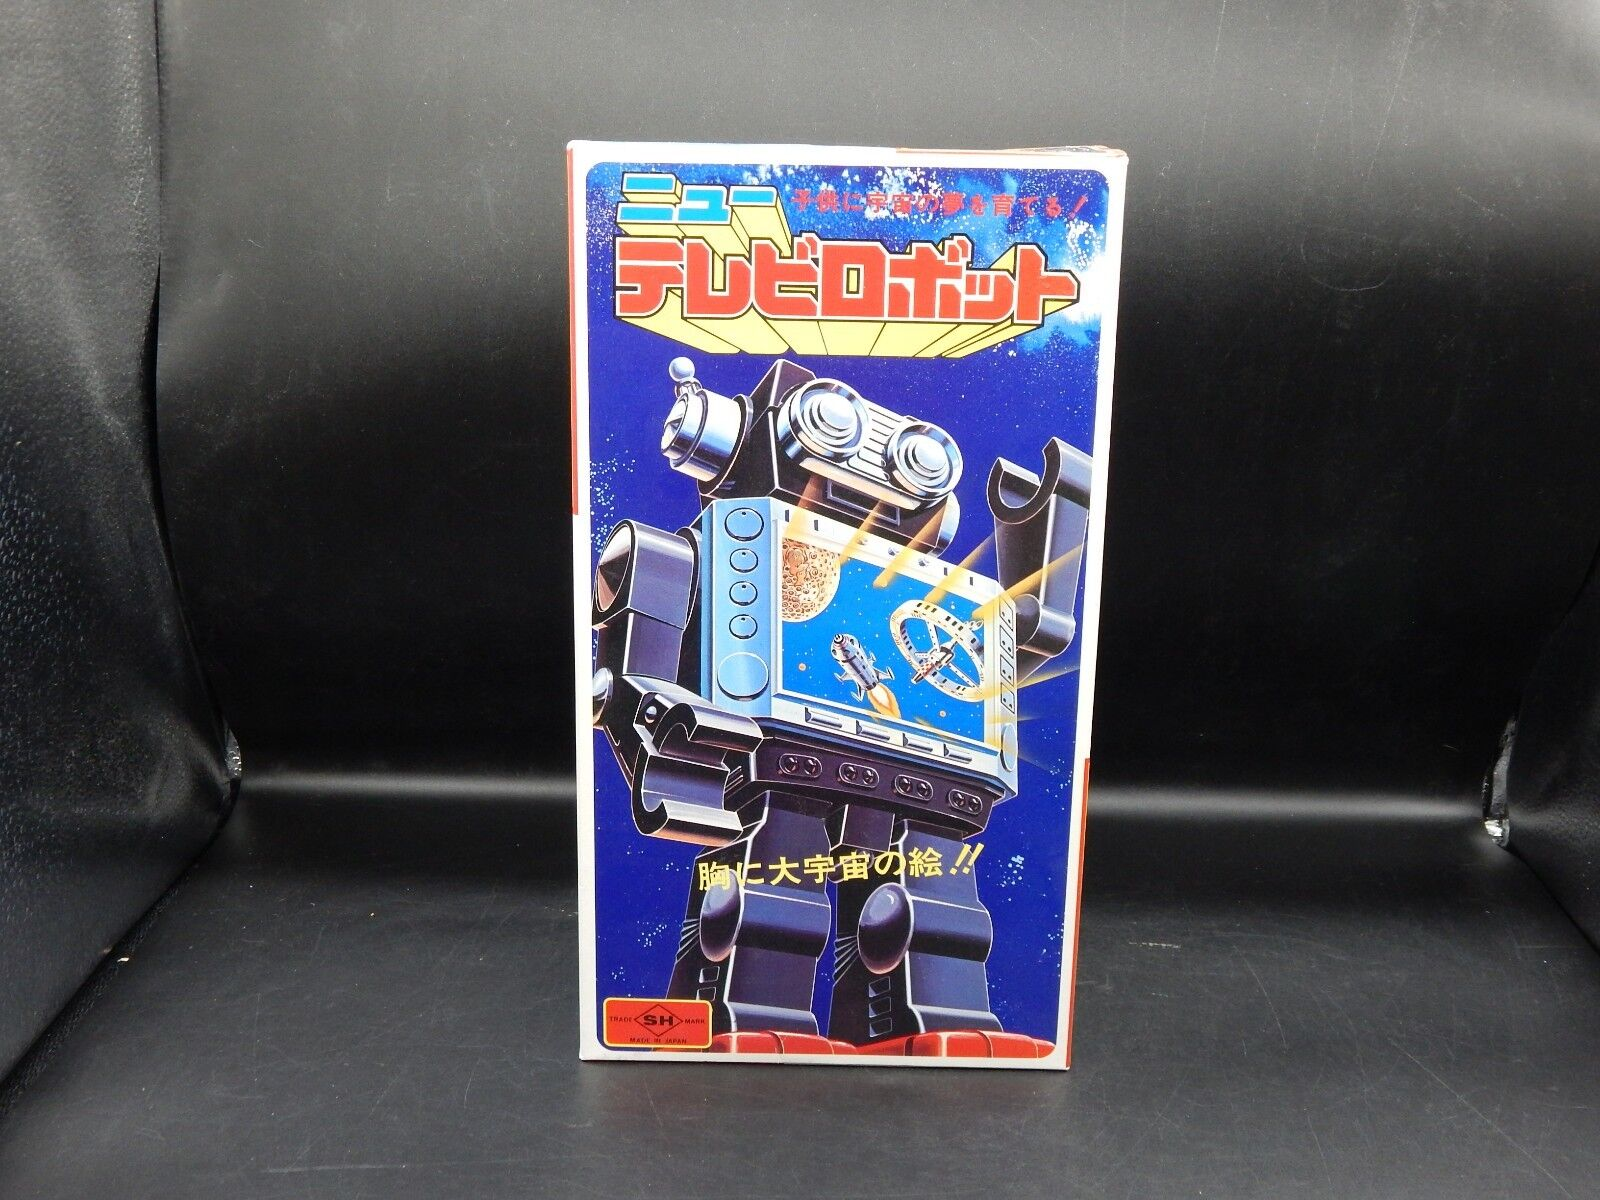 Horikawa vintage NEW TV ROBOT Japan plastic battery operated space toy w  box